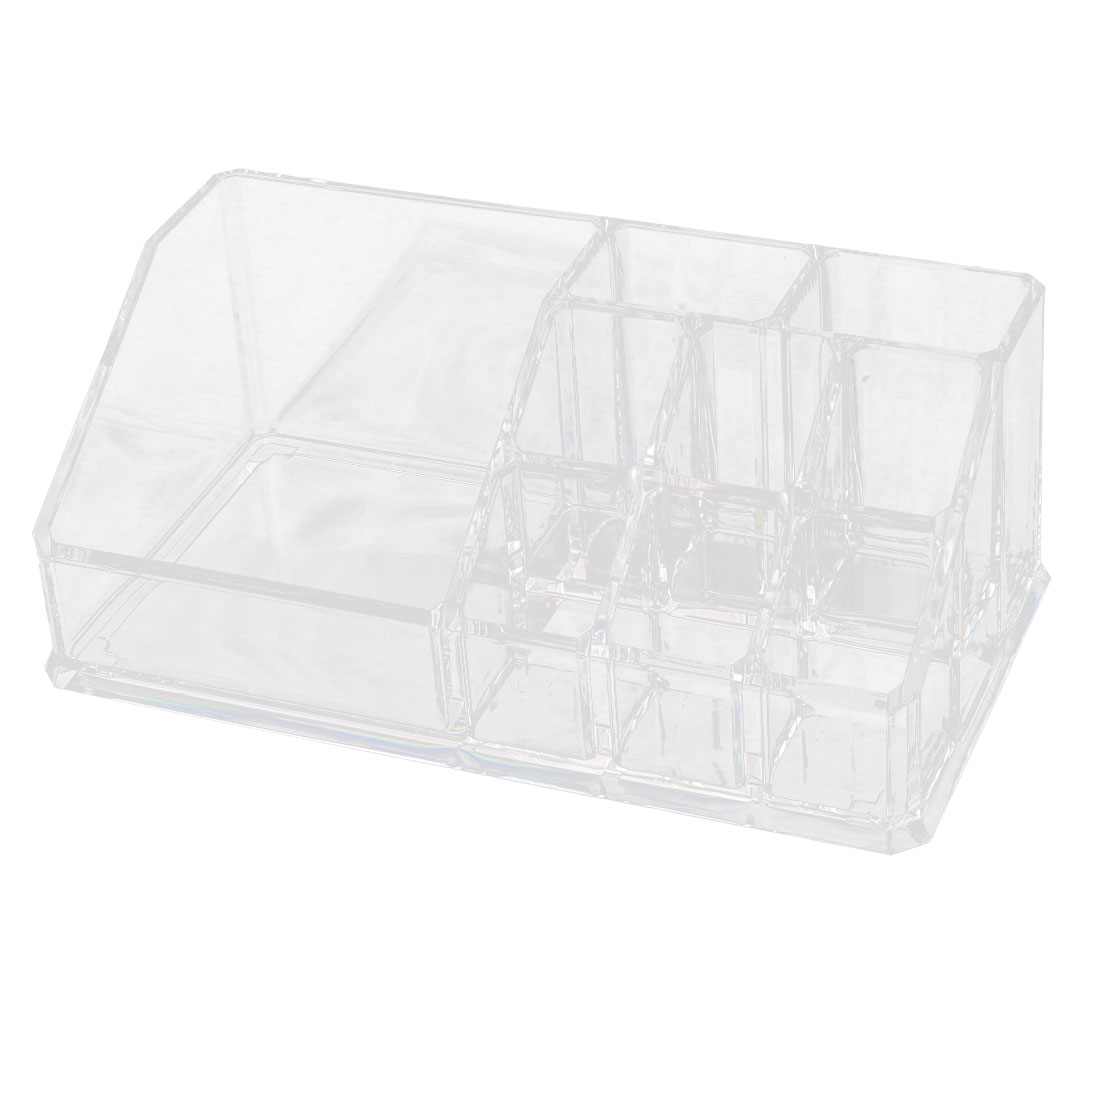 Acrylic 9 Slots Lipstick Makeup Display Case Jewelry Box Organizer Clear